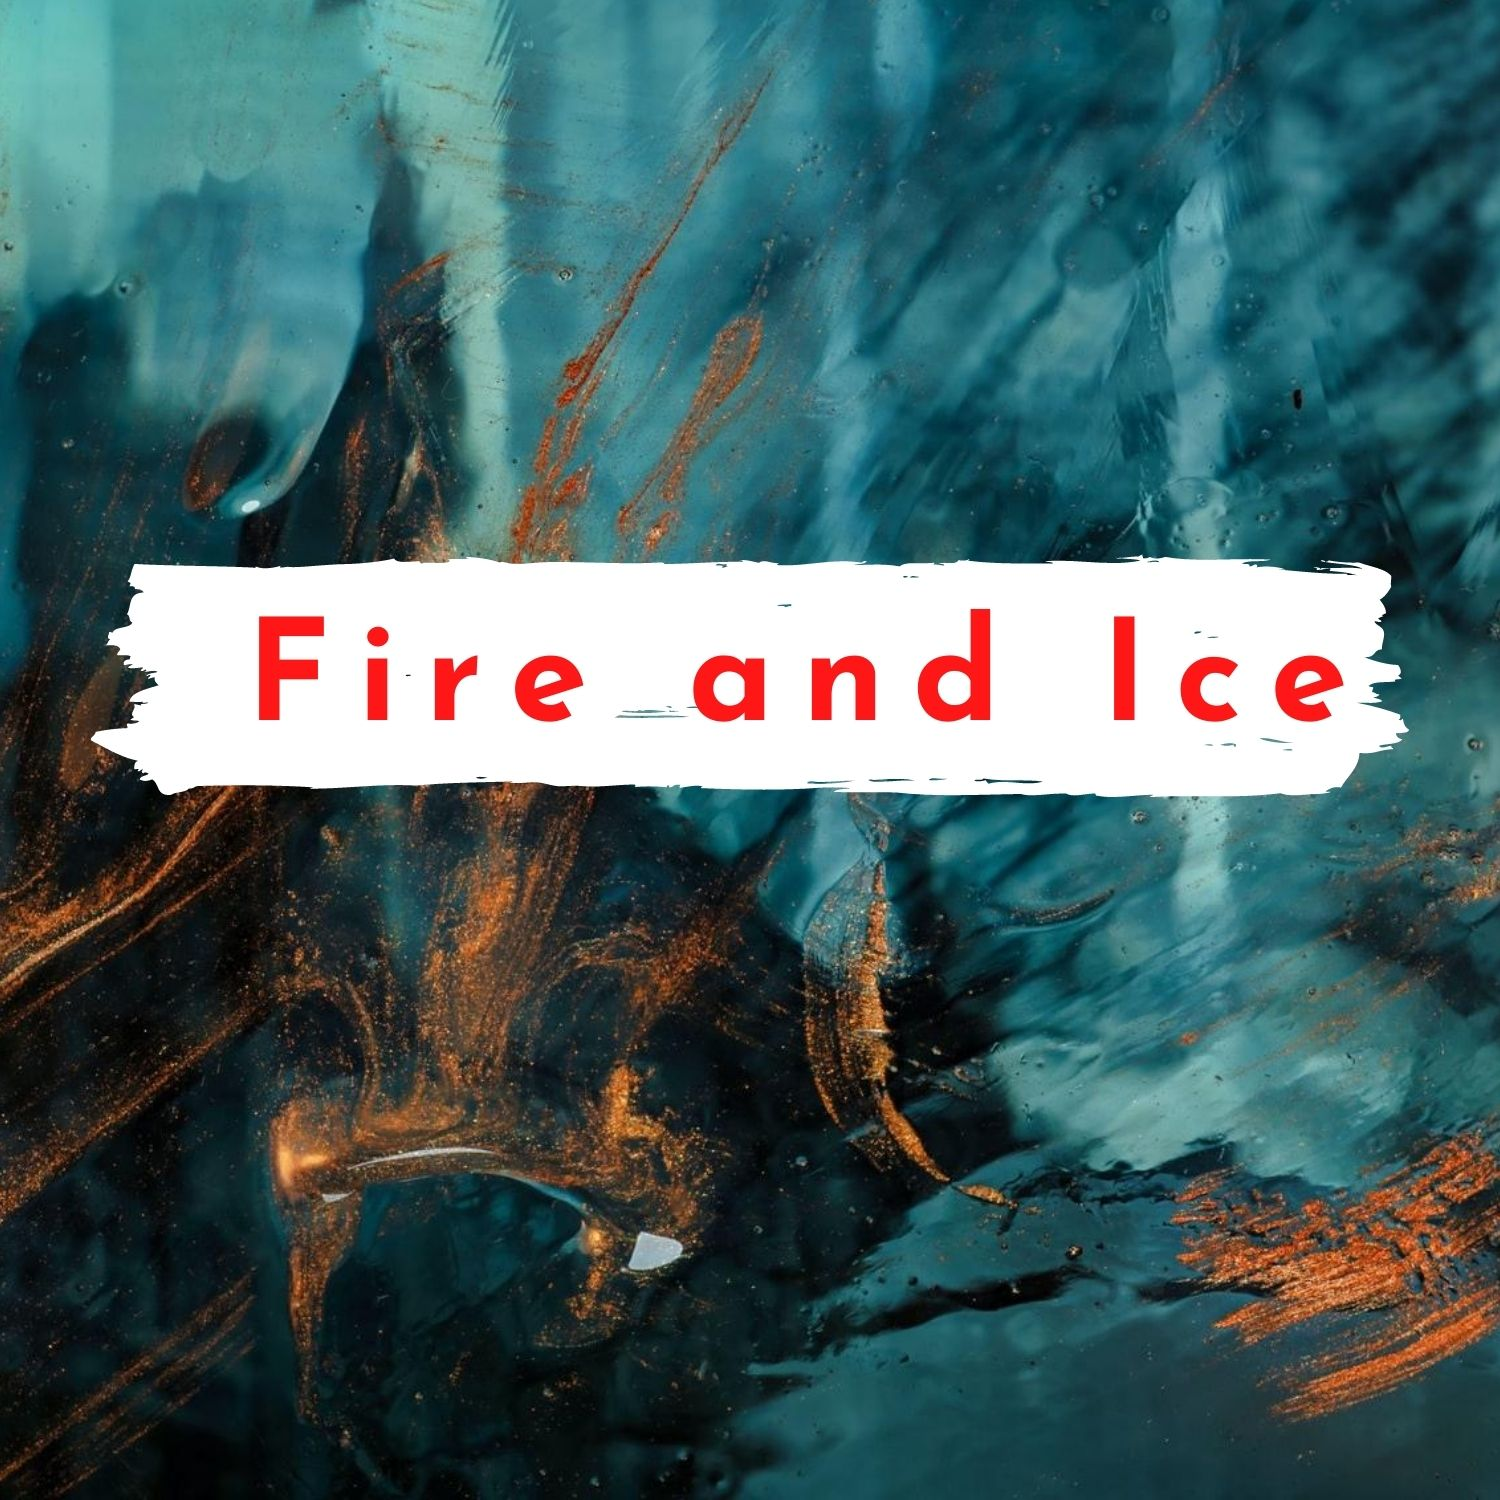 fire and ice short poem